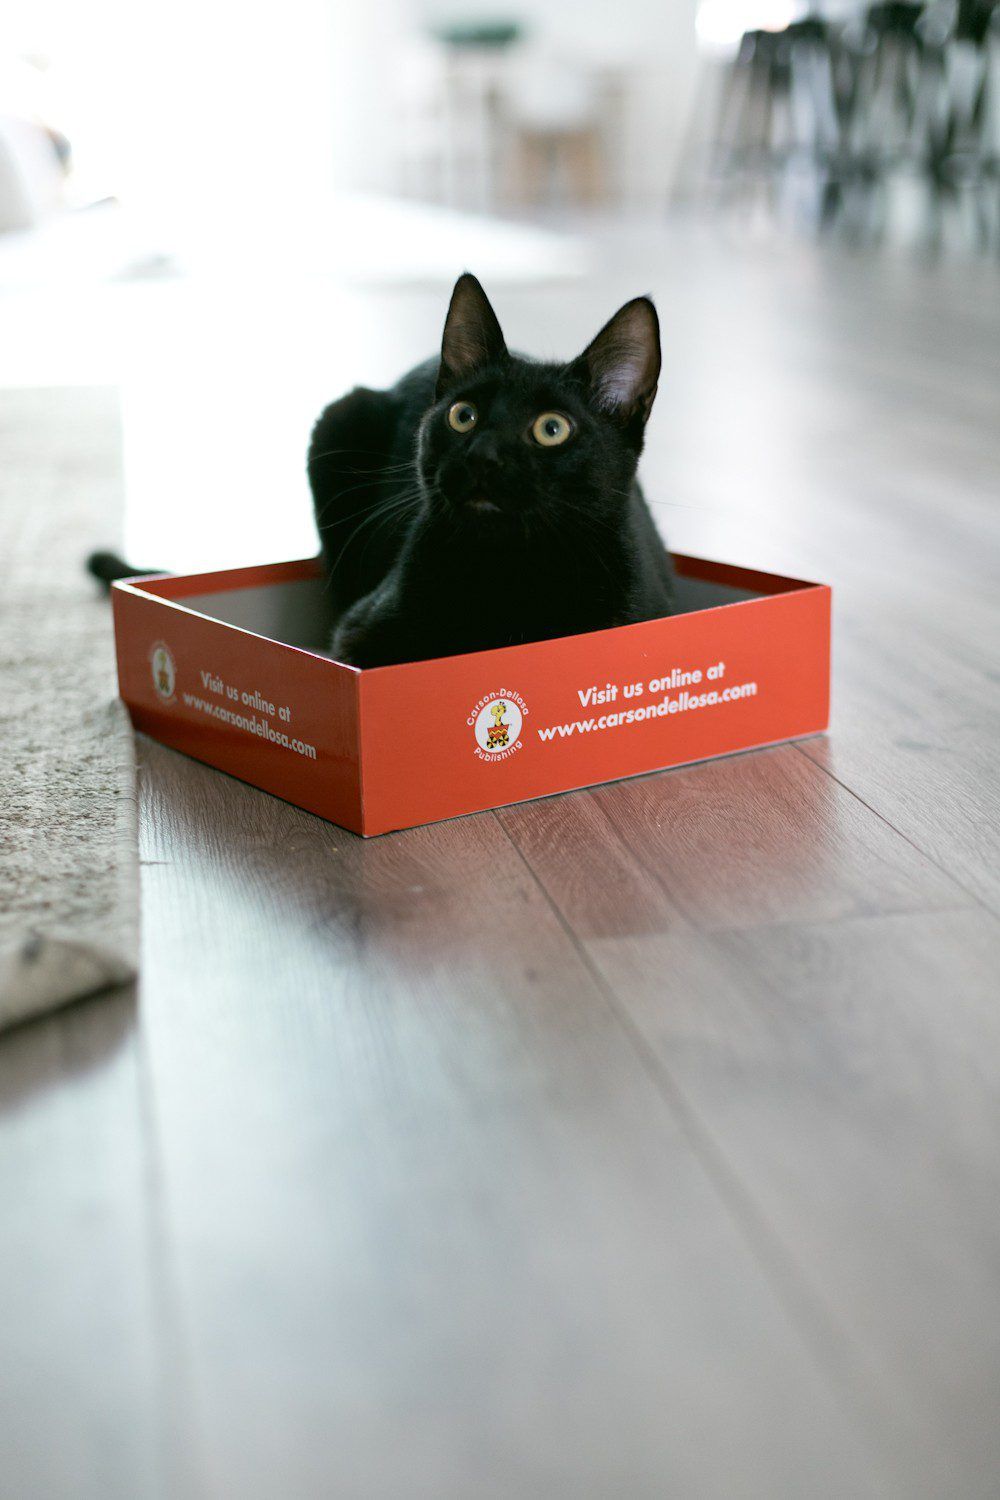 5 Essential Things for the Best Kitten Care from top US lifestyle blogger Tabitha Blue of Fresh Mommy Blog! I hate cat litter! Here's why the Litter Robot is amazing and our new kitten care best friend. | How to Train Your Cat to Use the Litter Box by popular Tampa life and style blog, Fresh Mommy: image of a black cat sitting in a box.